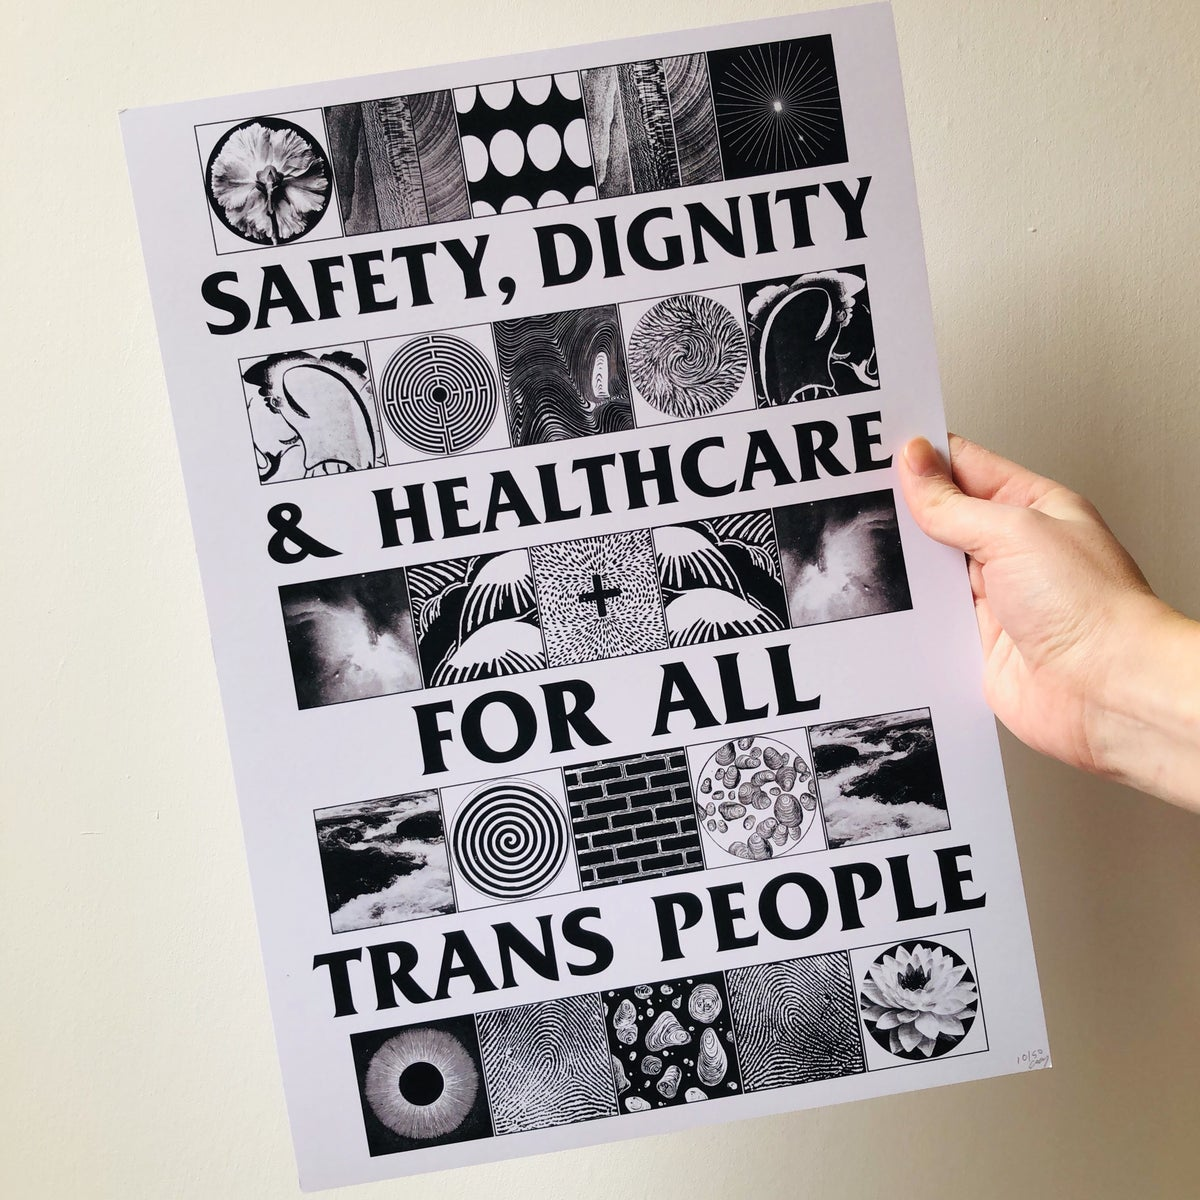 Image of Safety, Dignity & Healthcare For All Trans People A3 art print